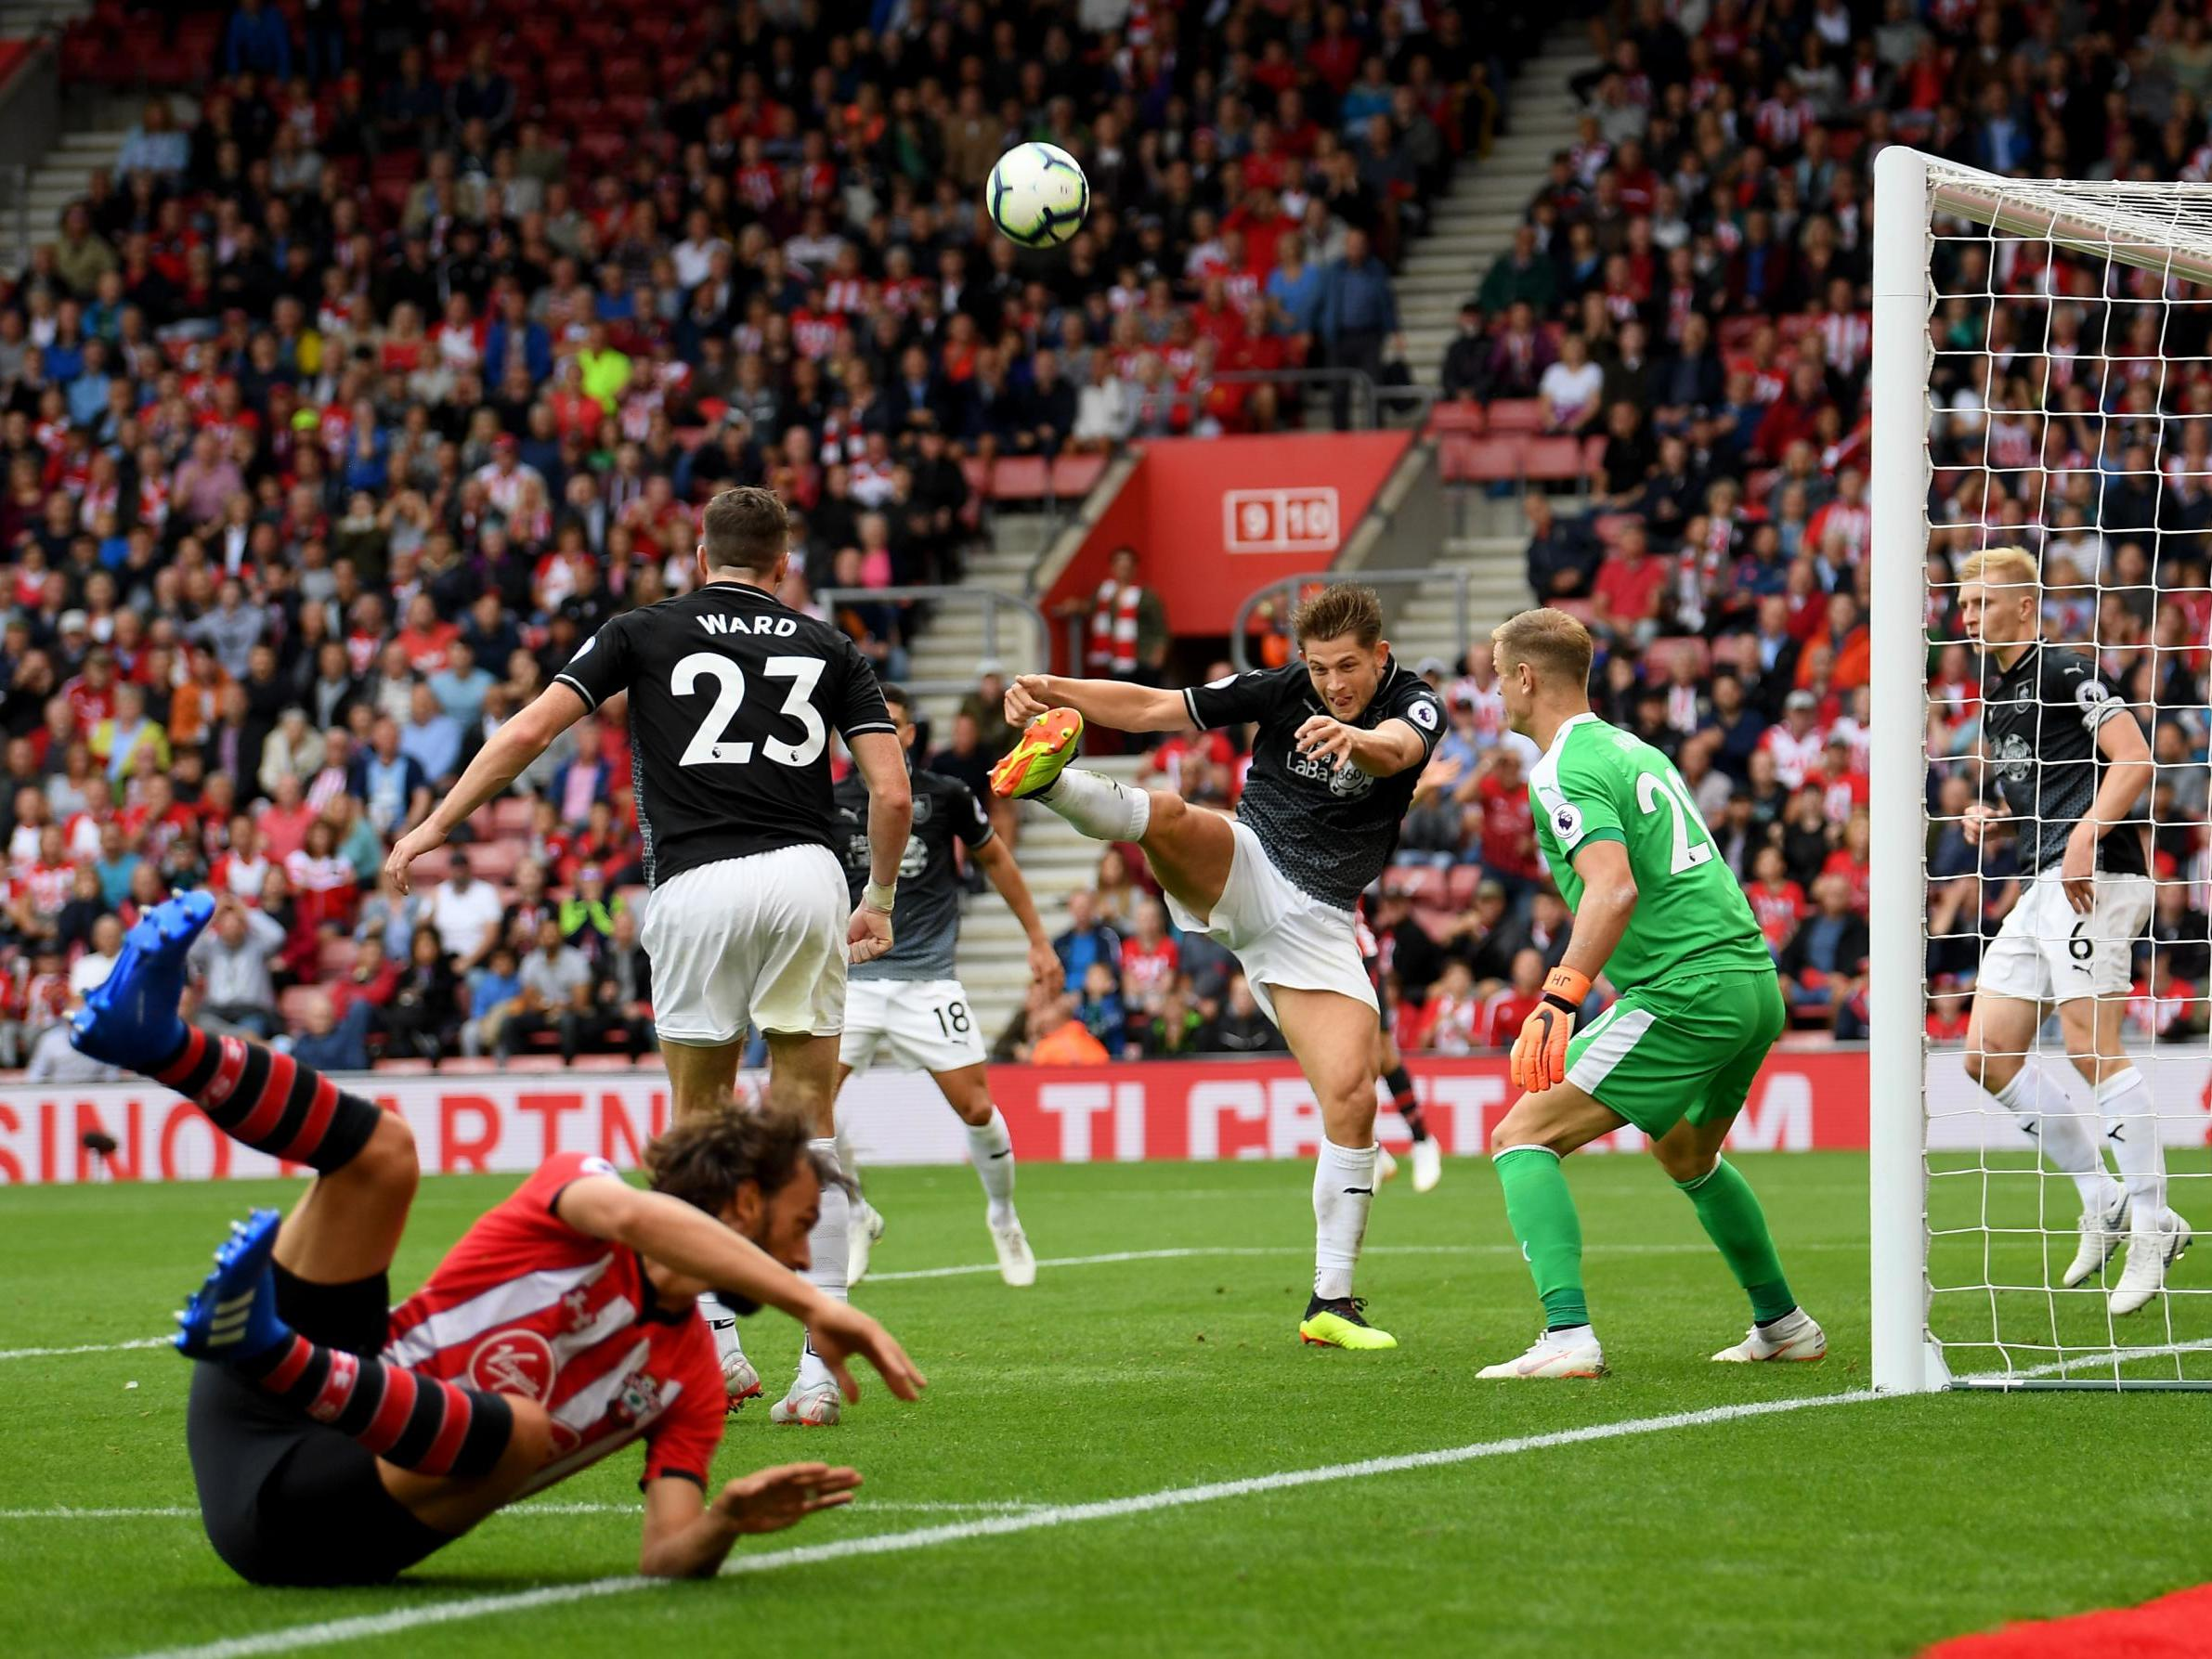 New season, same problems for Southampton as Burnley come away with a point